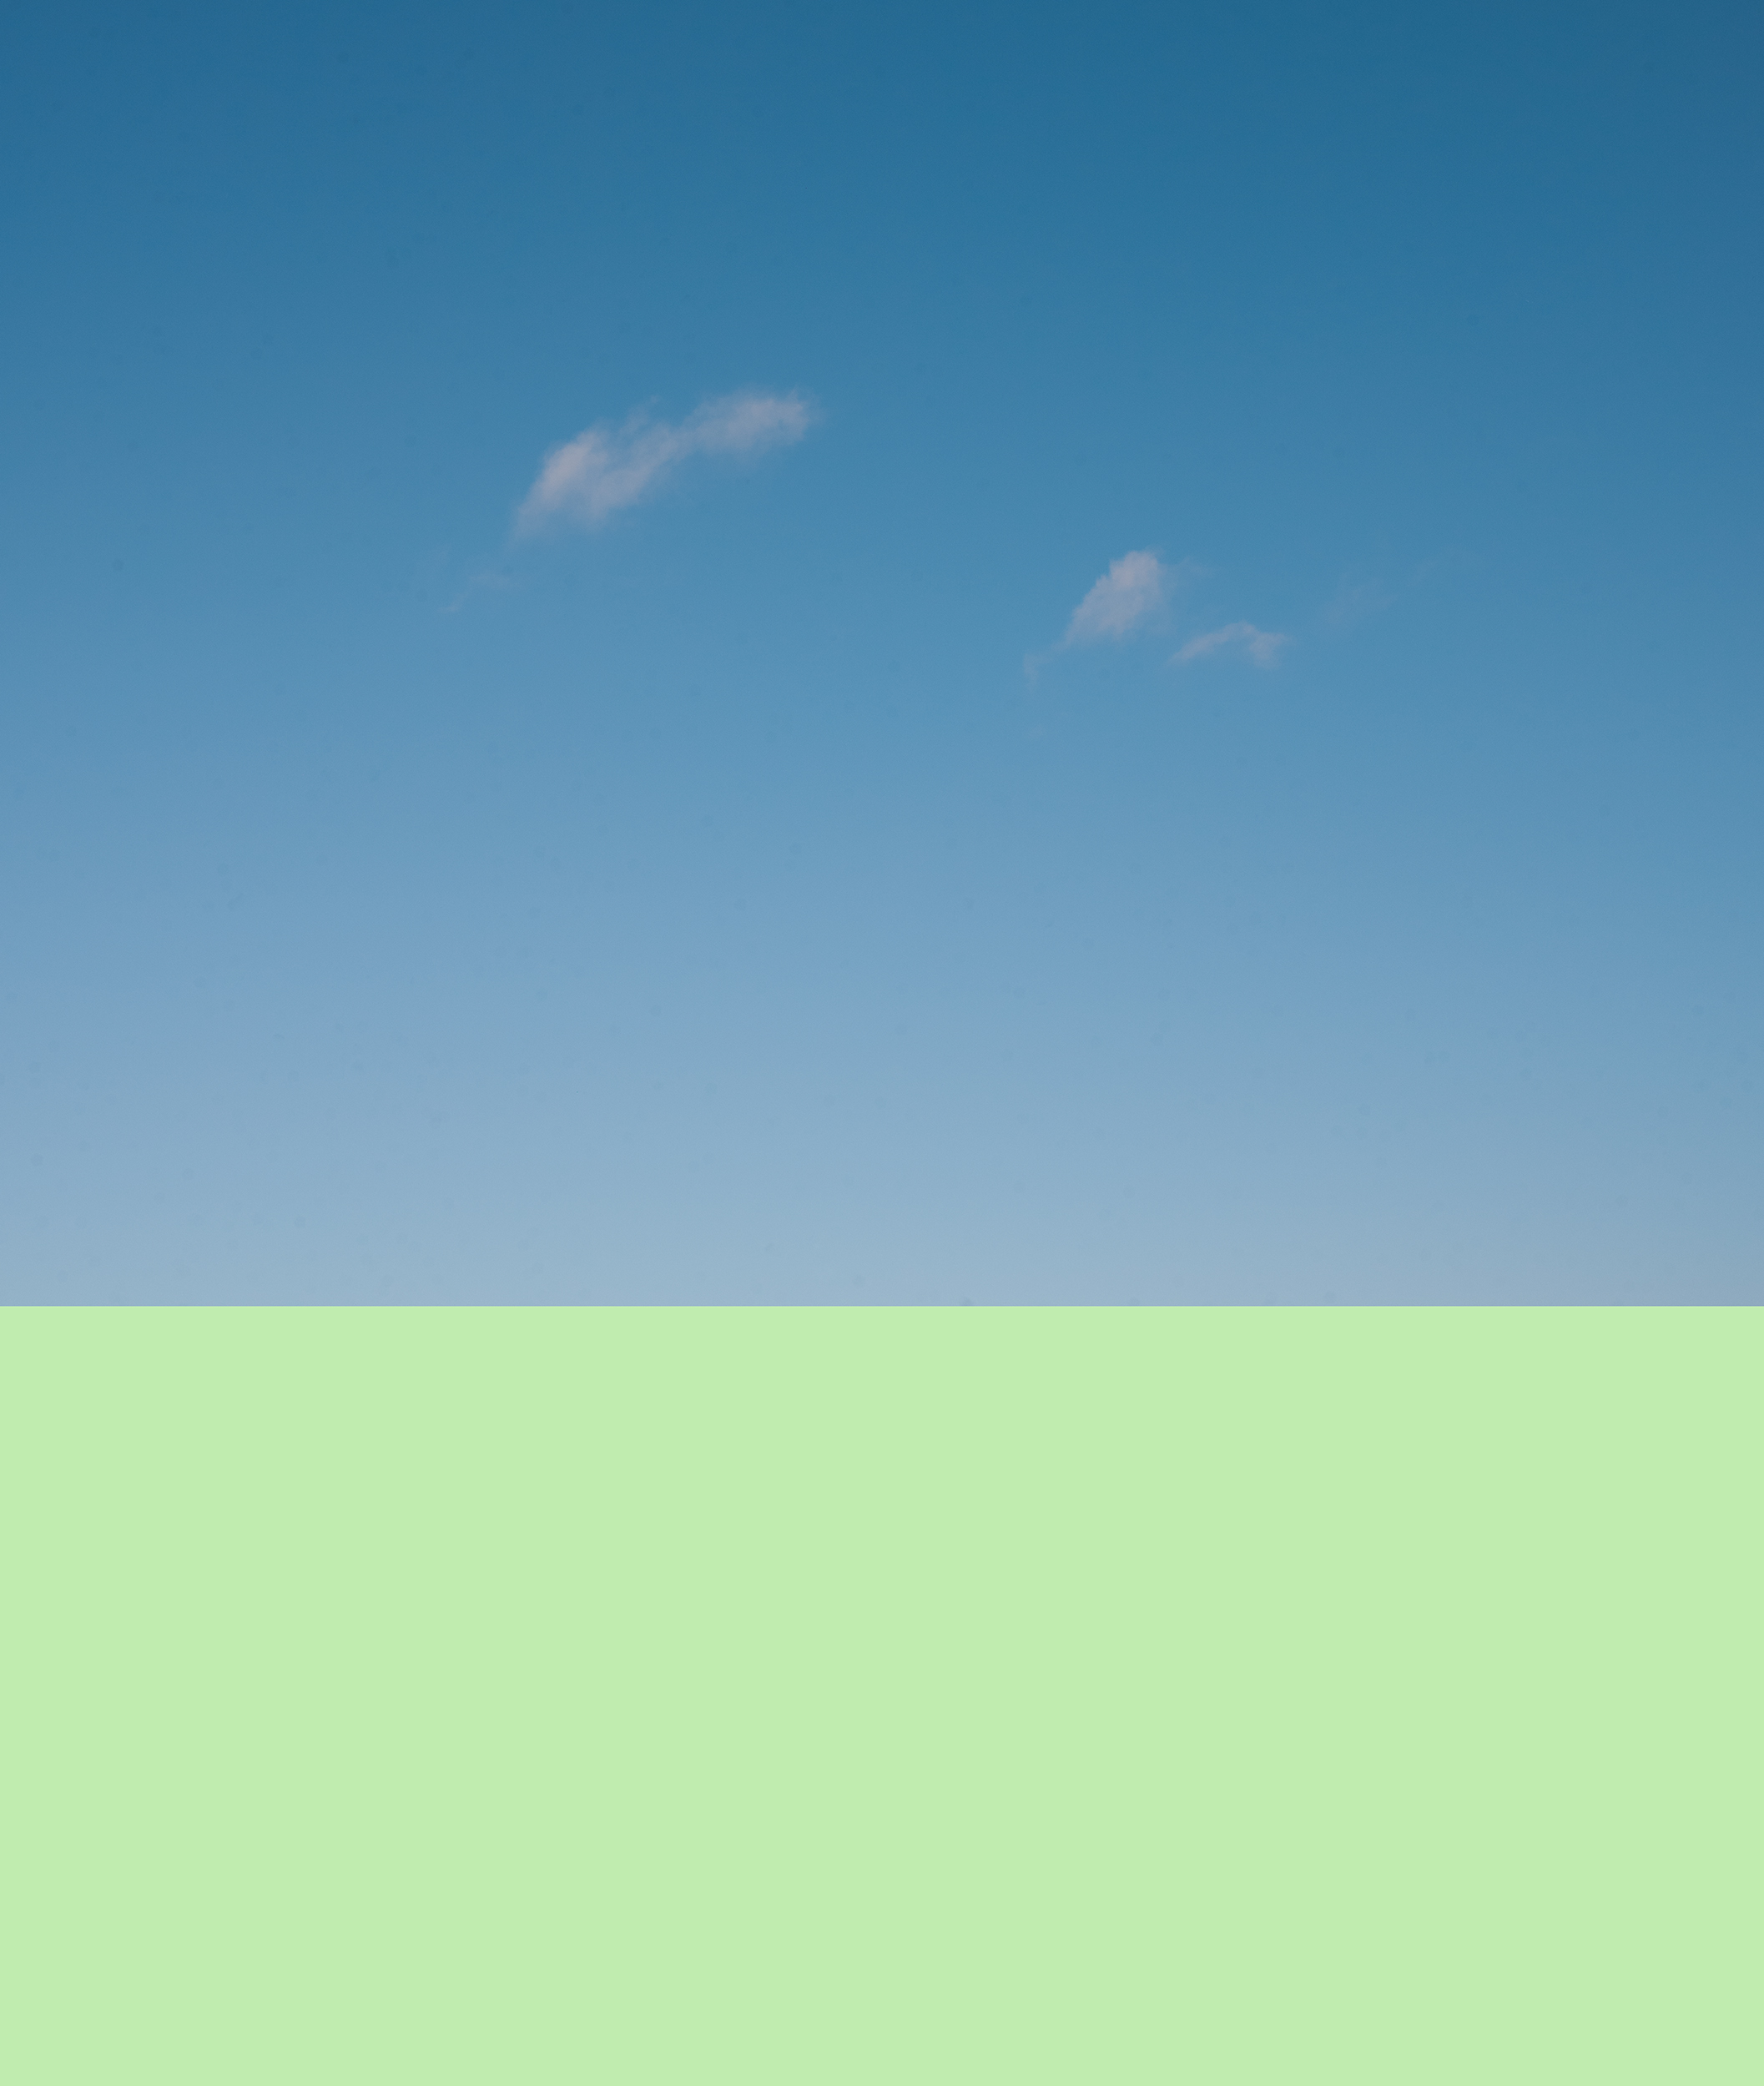 'Blue Sky, Google Green'